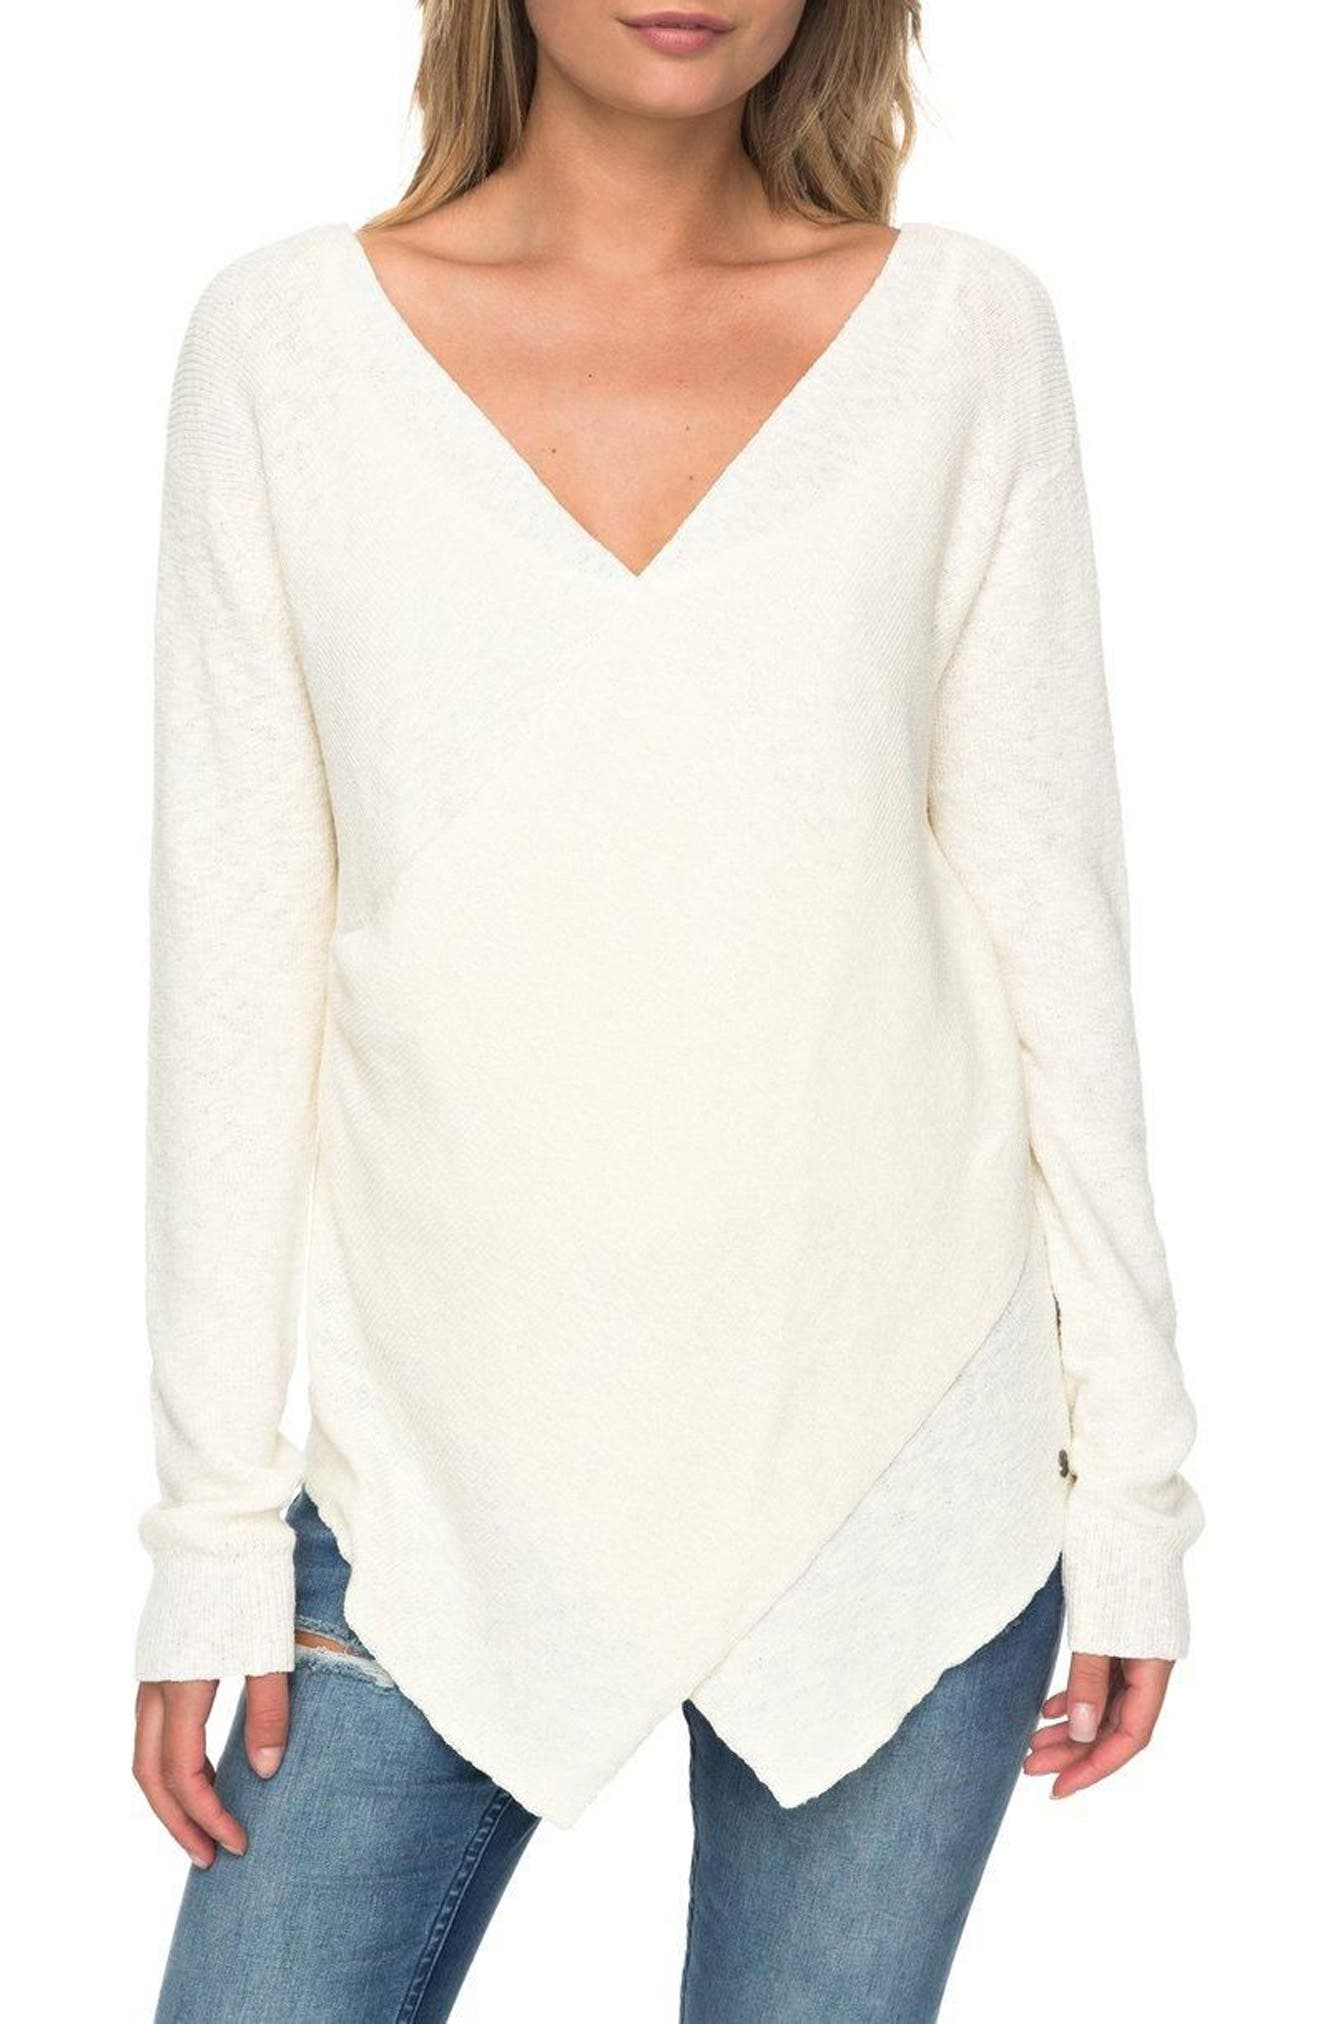 Roxy Love at First Light Sweater